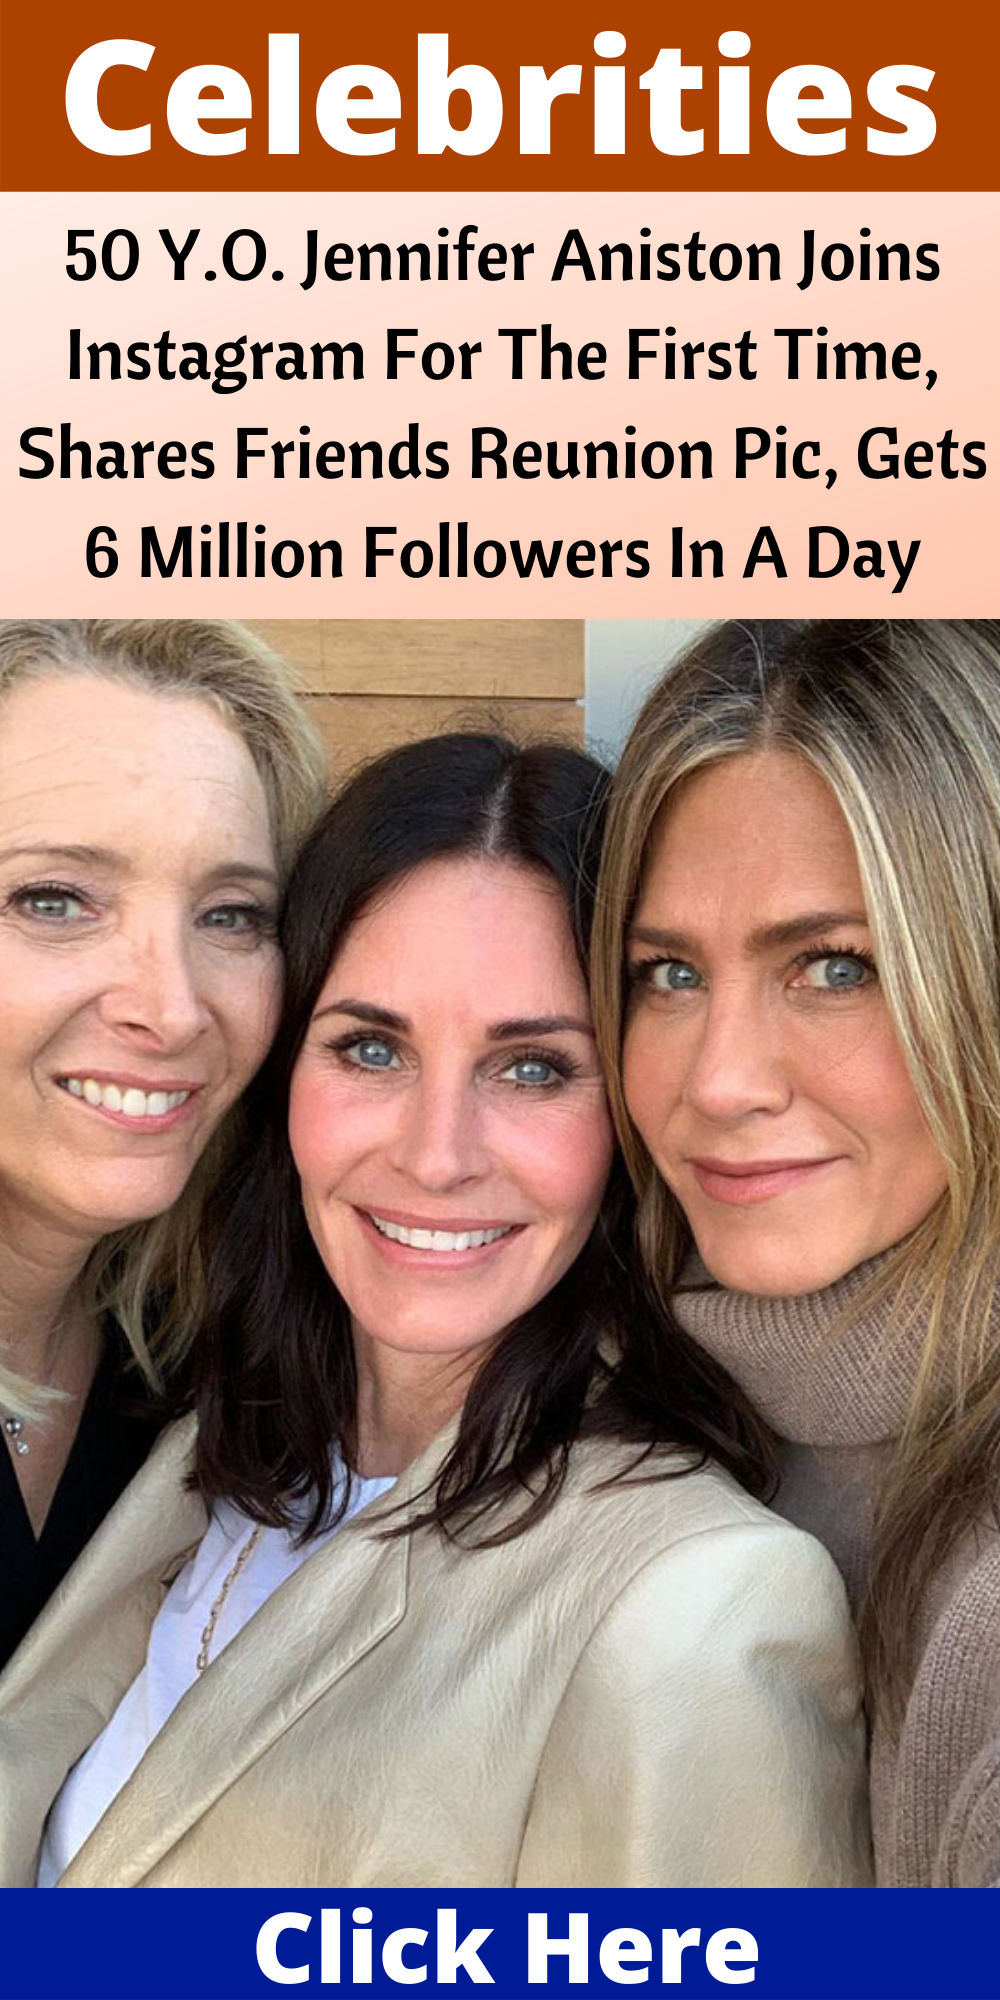 50 y o jennifer aniston joins instagram for the first time shares friends reunion pic gets 6 million followers in a day bored panda 50 Y O Jennifer Aniston Joins Instagram For The First Time Shares Friends Reunion Pic Gets 6 Million Follow Jennifer Aniston Friends Jennifer Aniston Join Instagram